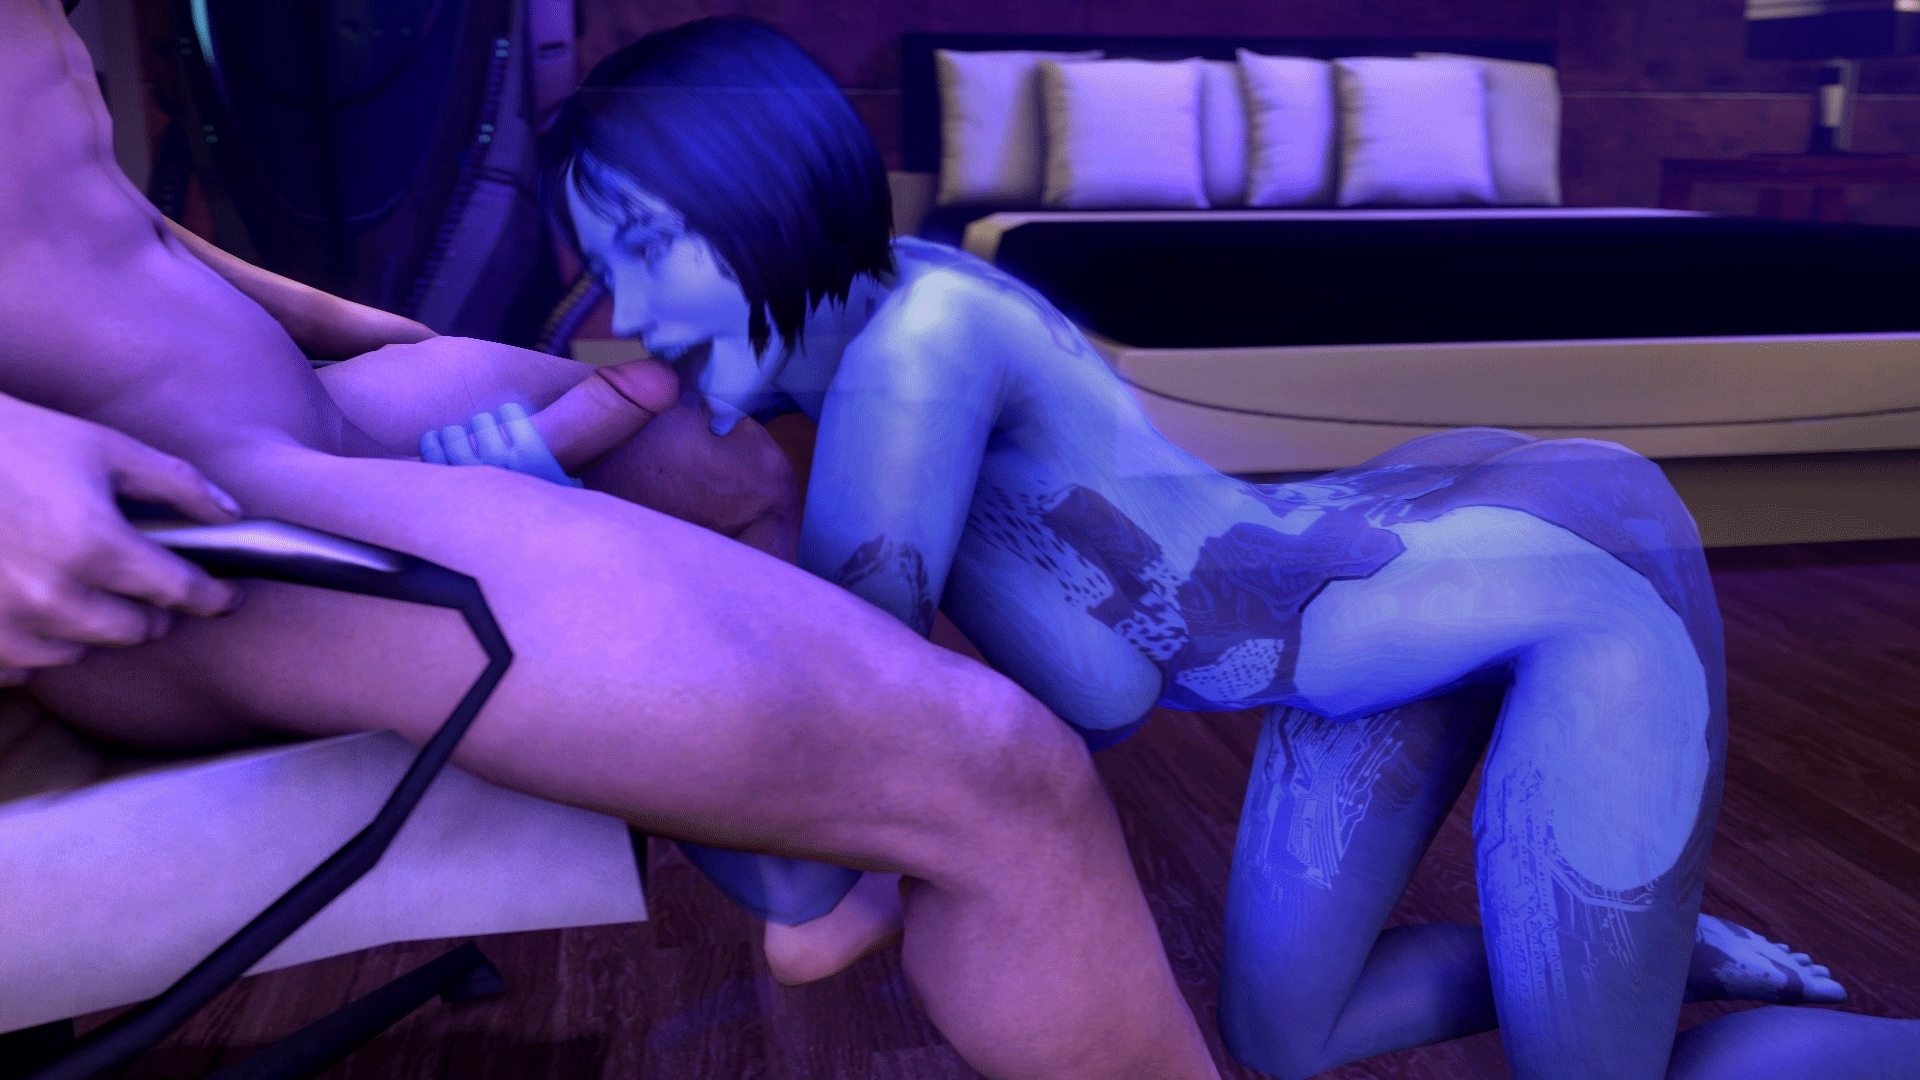 Cortana animated porn sex pic